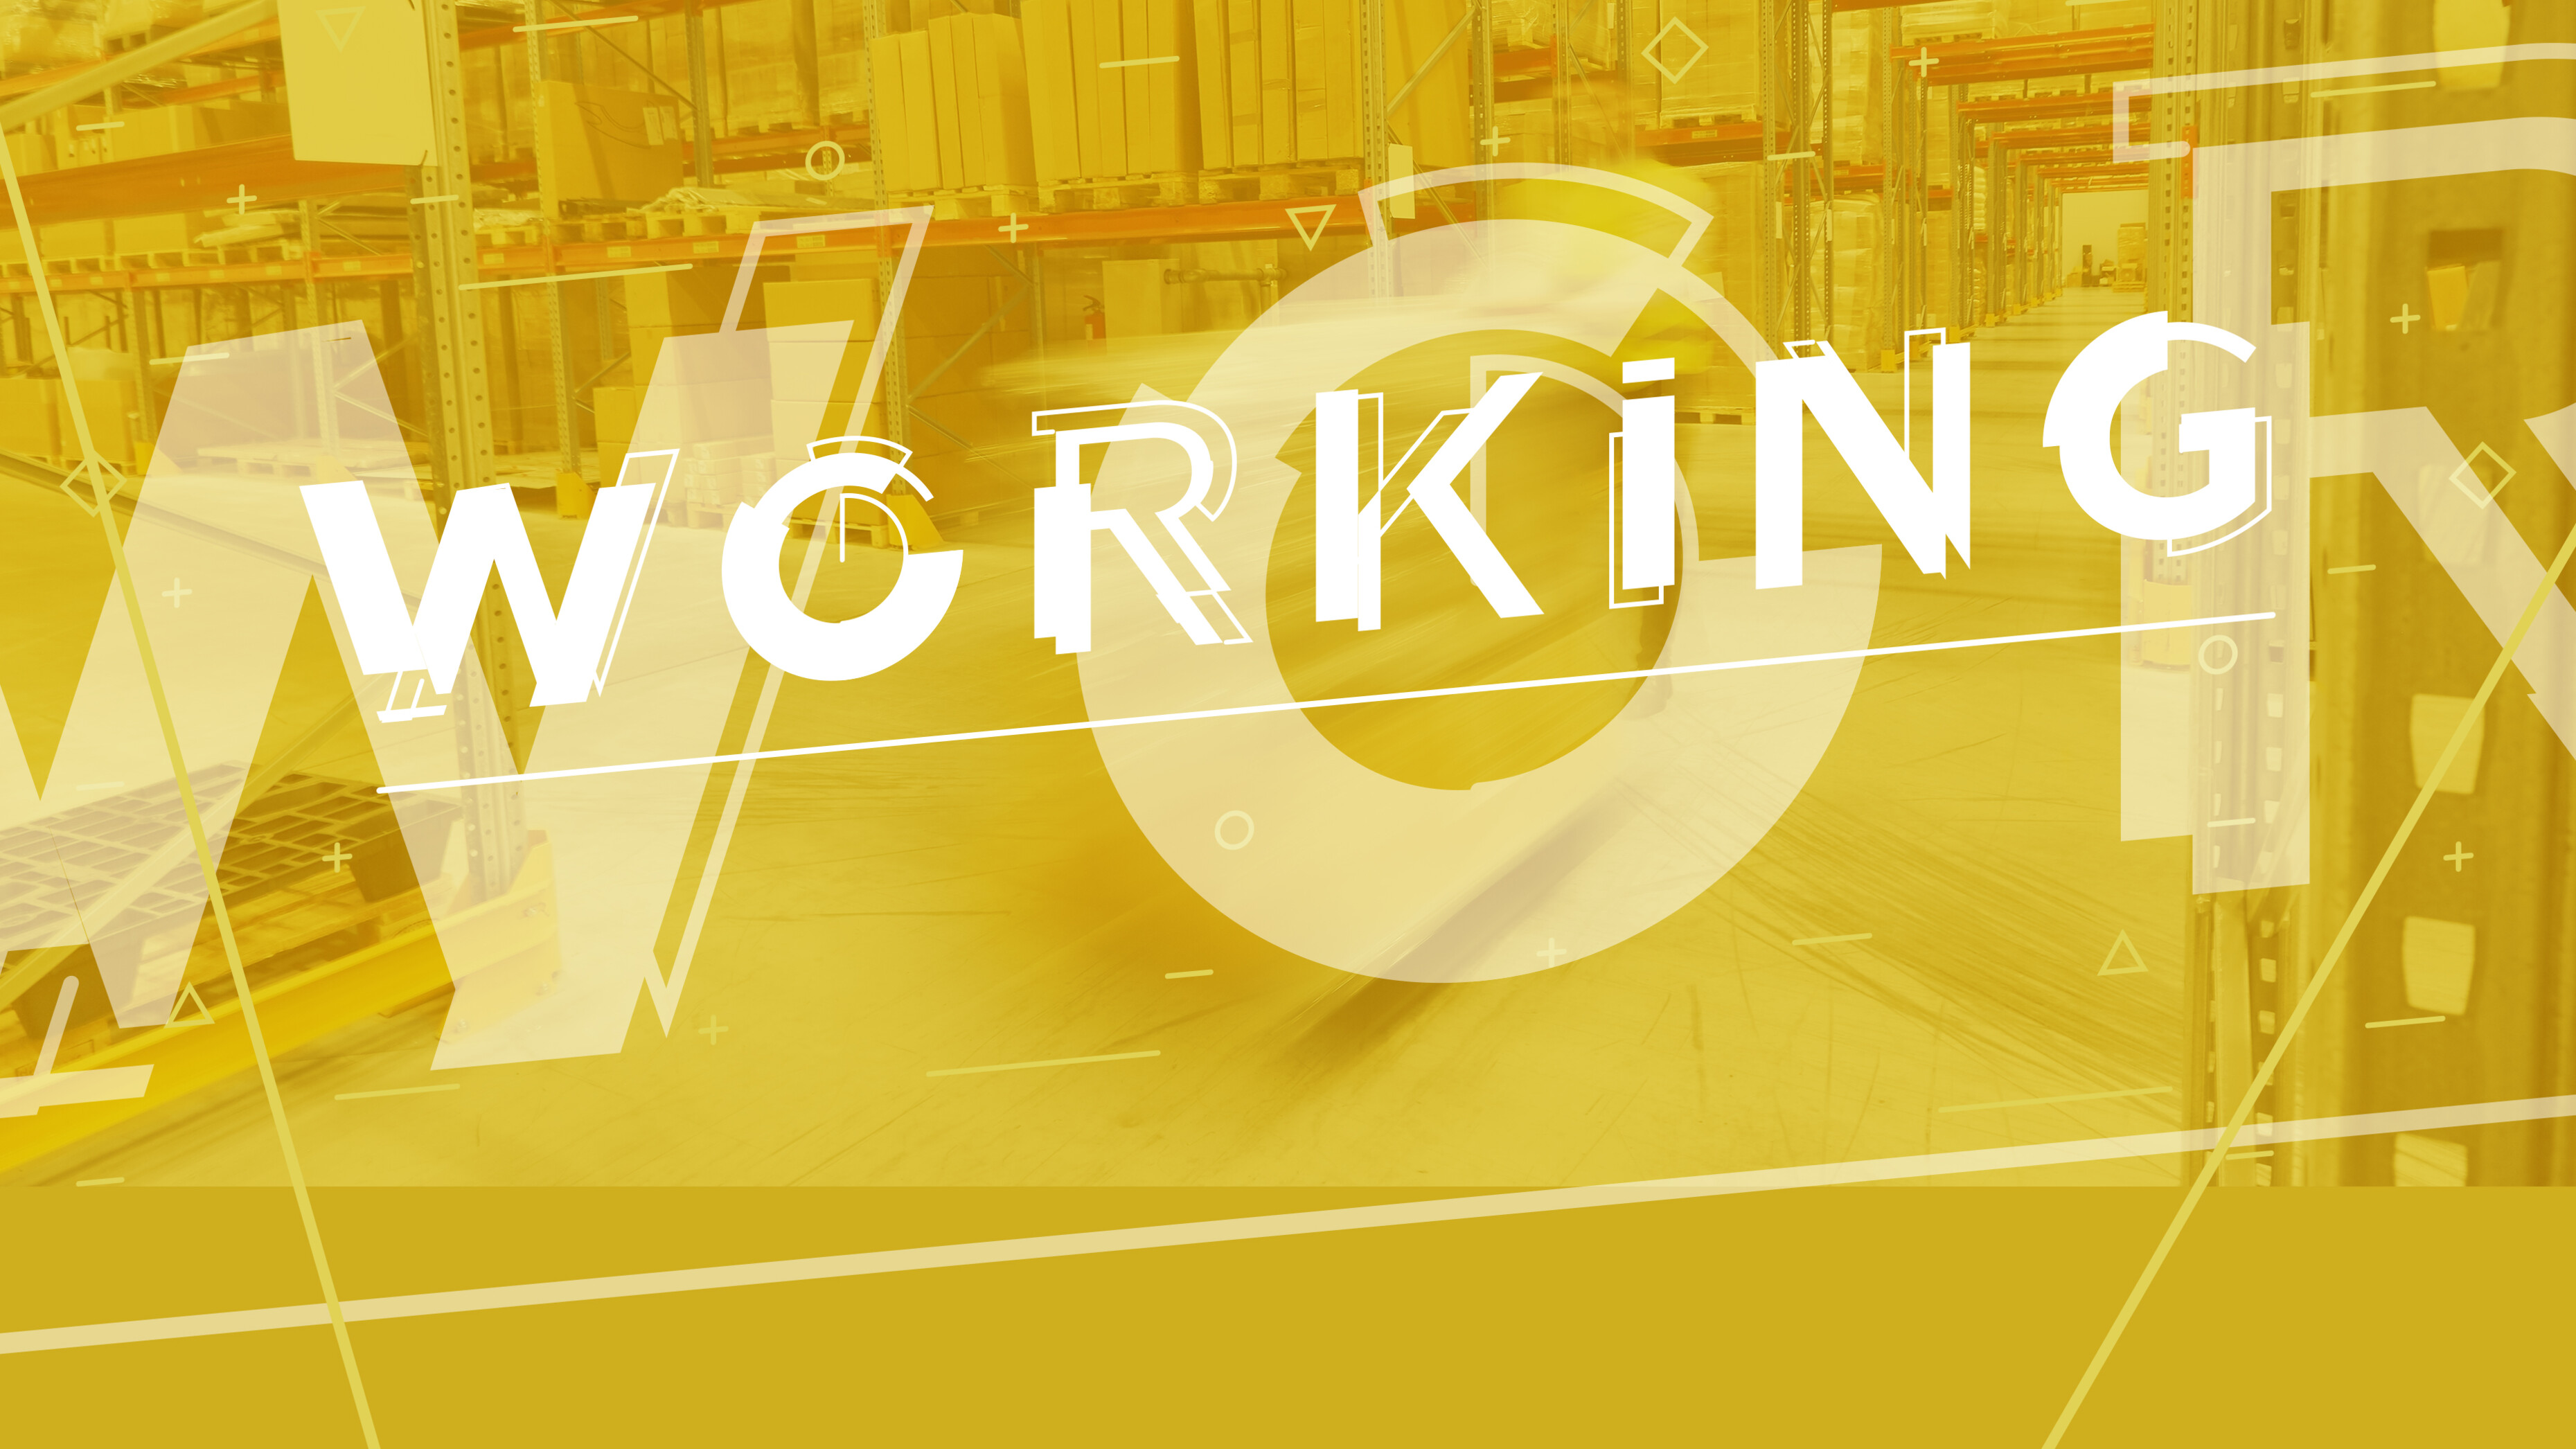 The word Working over a brass background showing an industrial setting